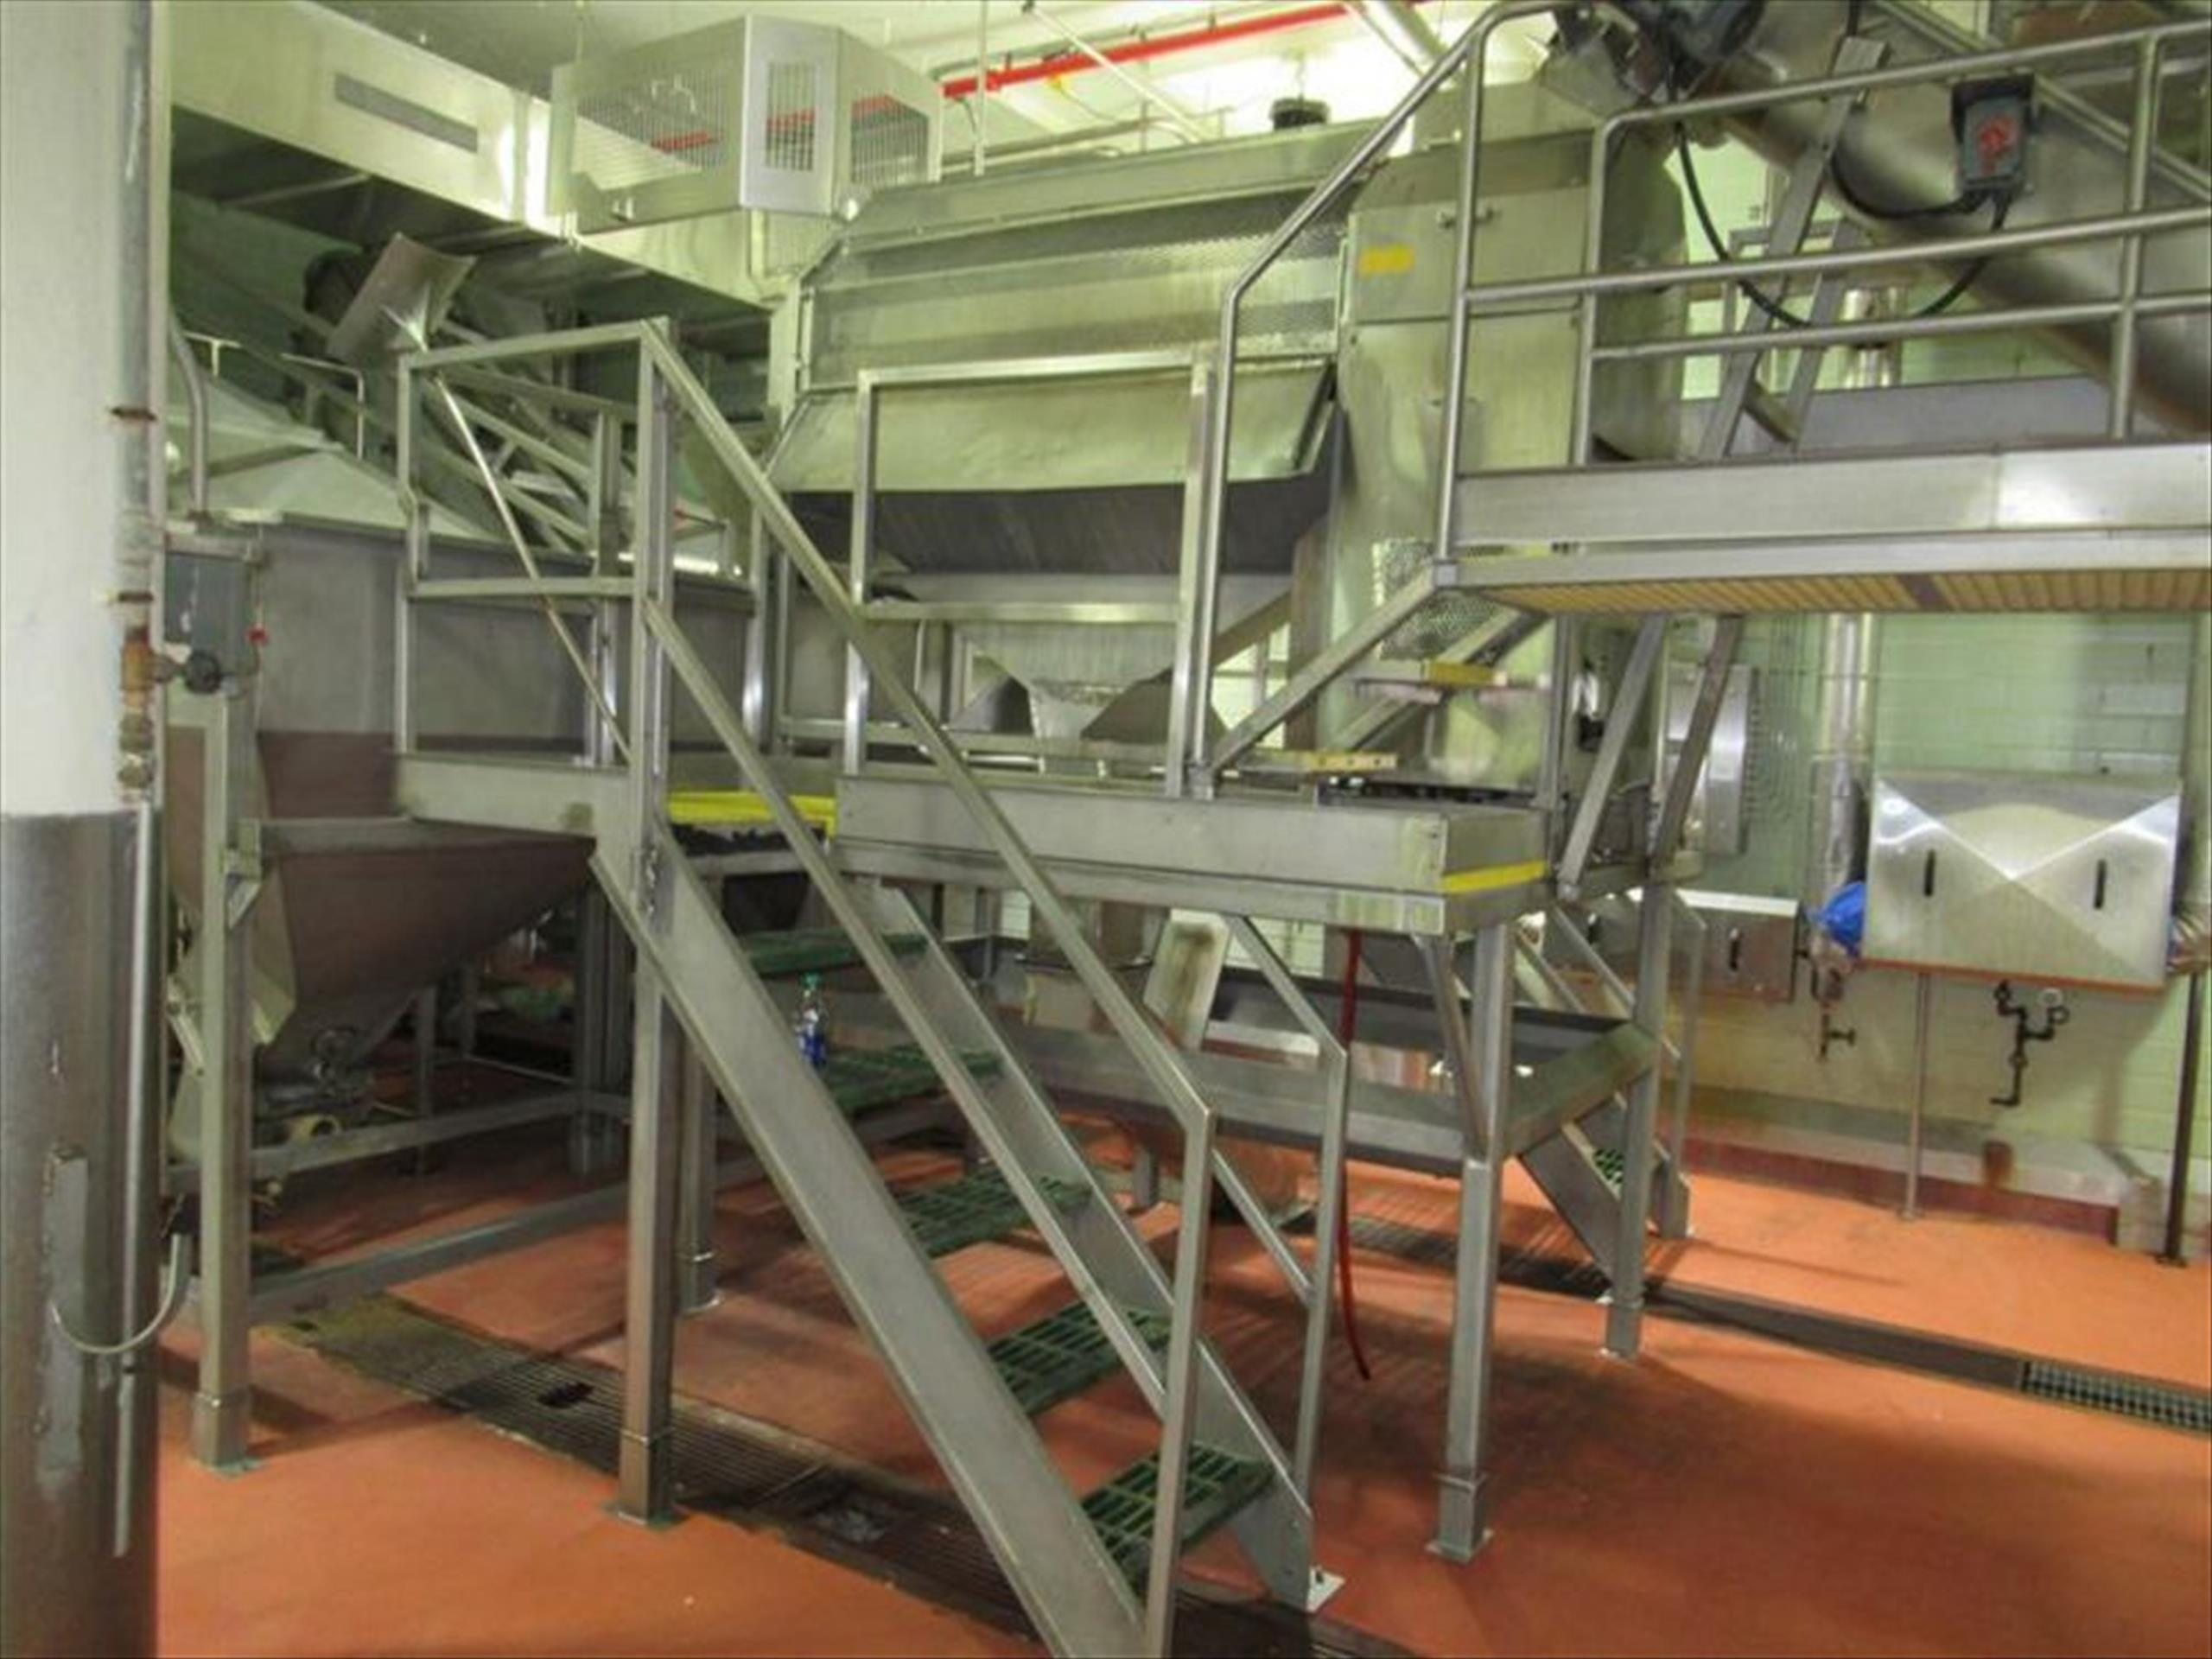 Abrasive peeler continuous washing feeling machine, 4 brush and 4 abrasive rollers, approx 4000